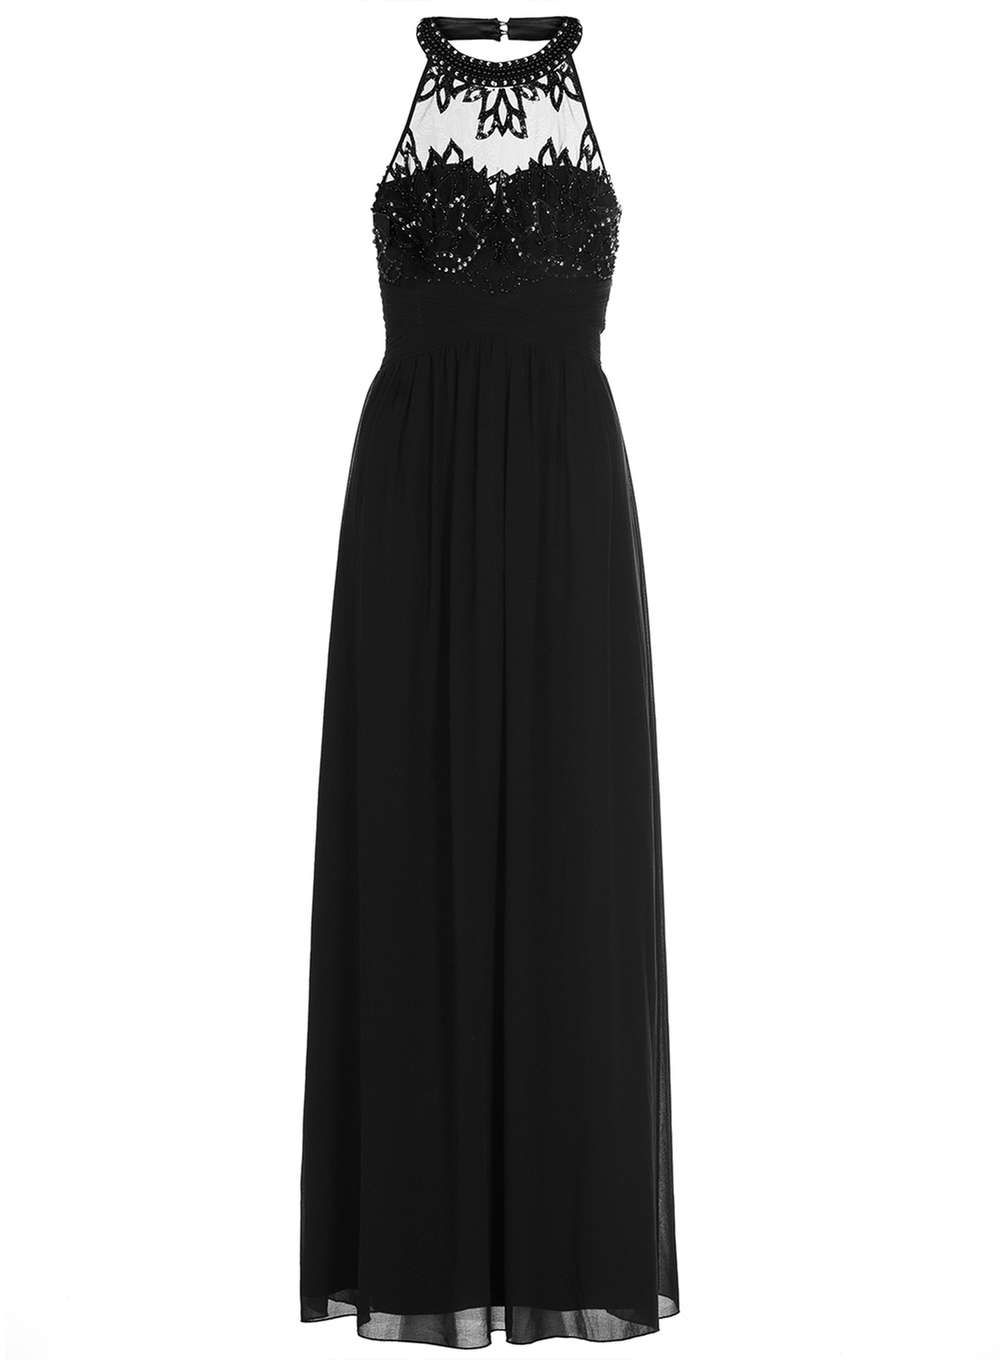 Dorothy perkins womens quiz black high neck maxi dress black cool